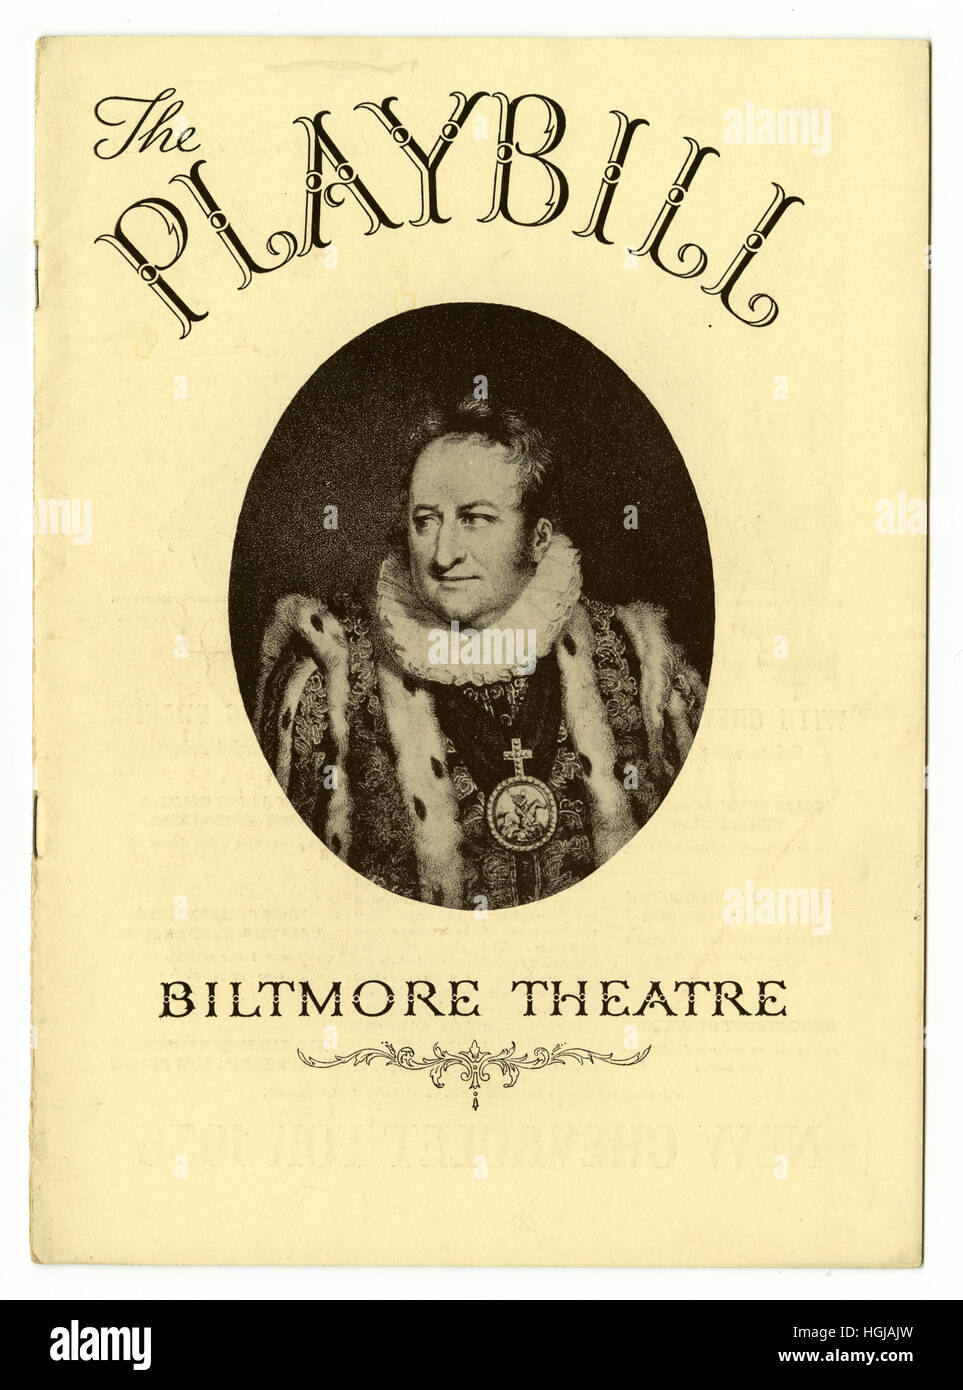 Antique 1935 theater program from the Biltmore Theatre, in New York City. - Stock Image